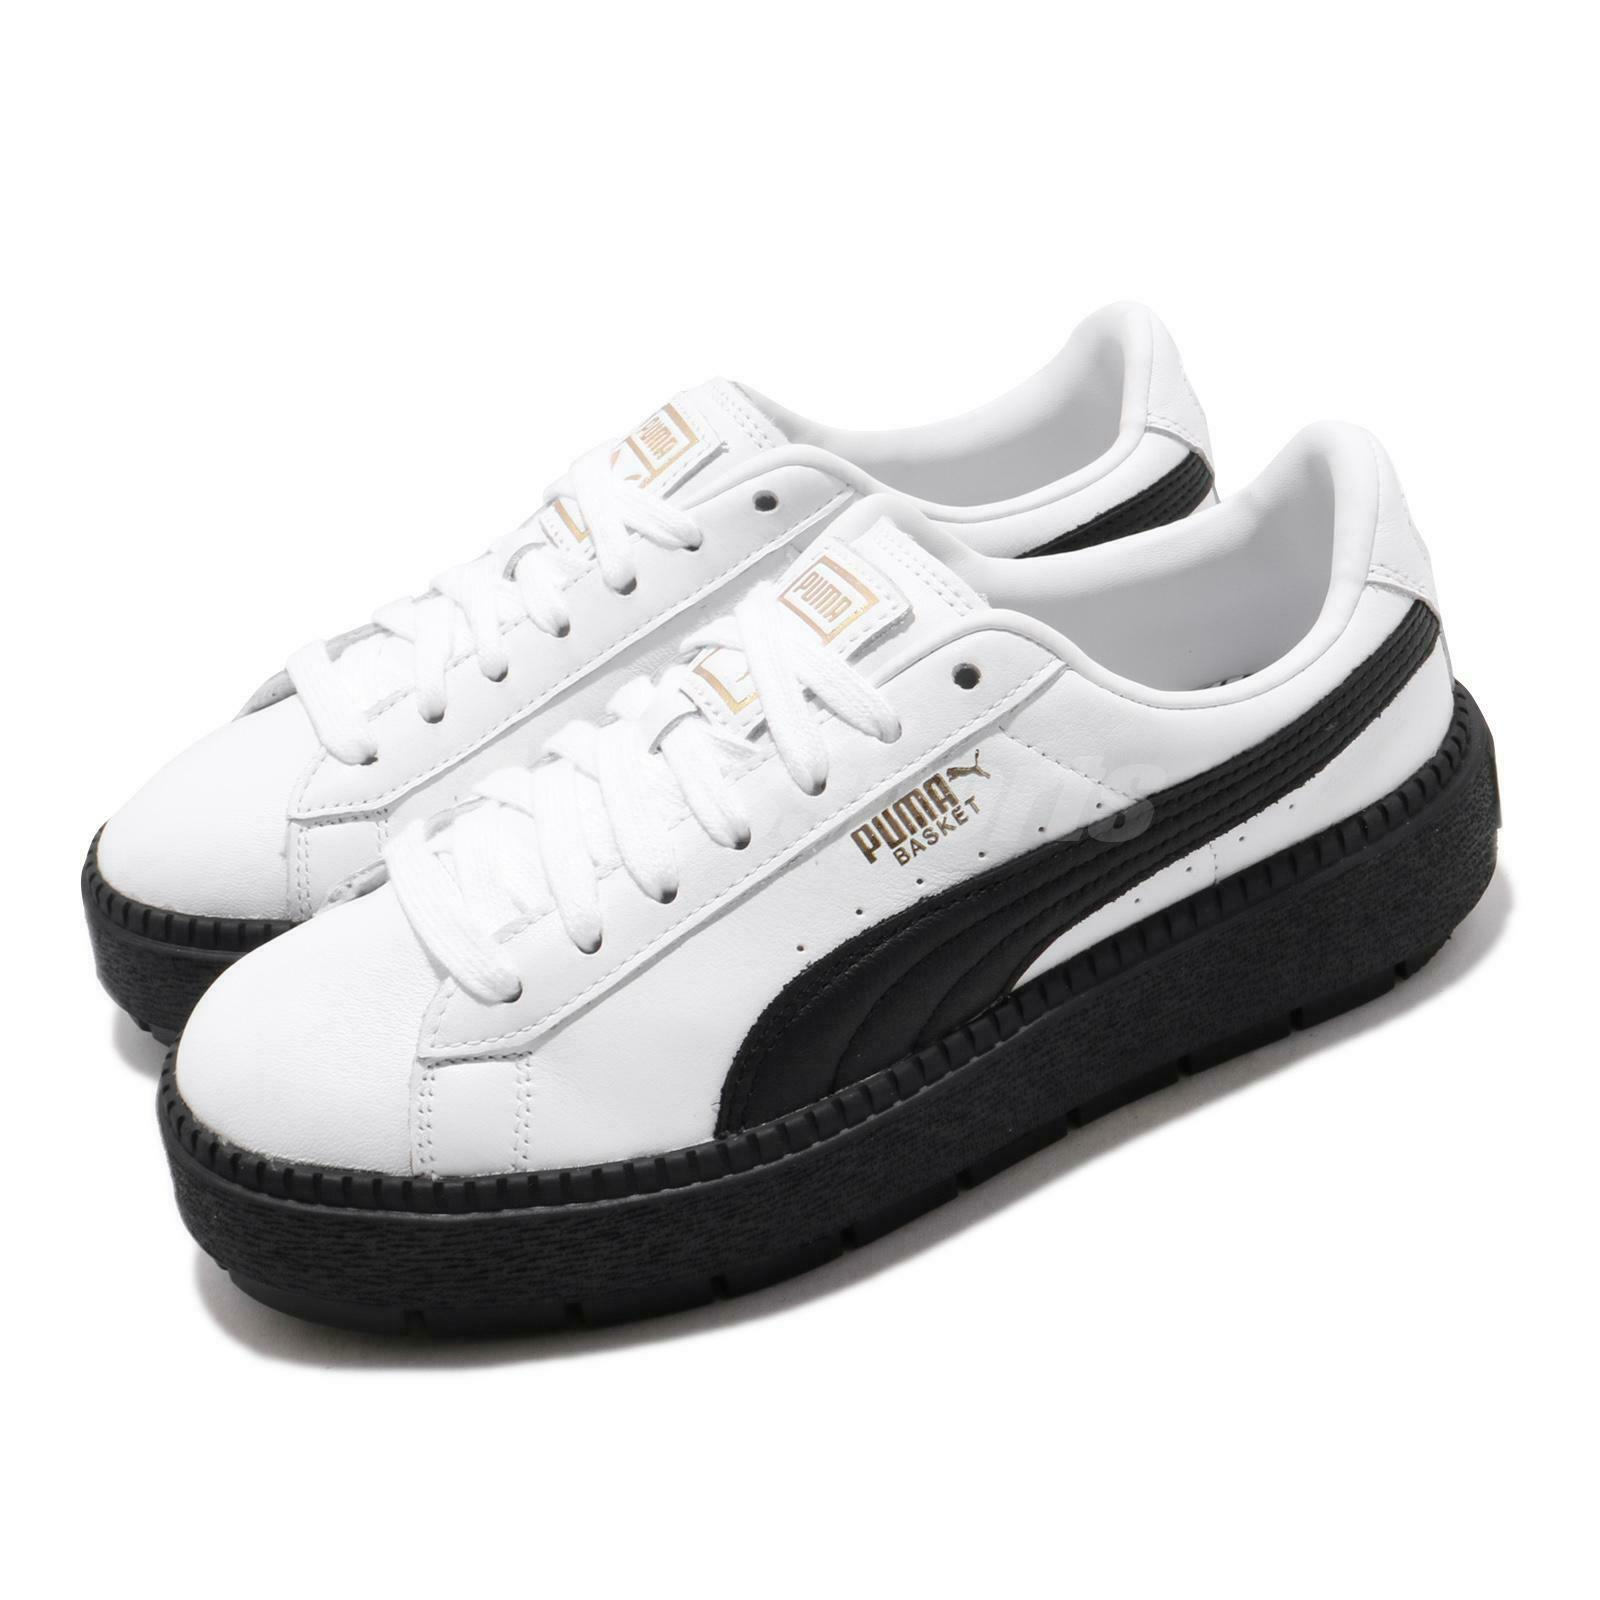 Puma Platform Trace L Wns Basket White Black Women Casual ...